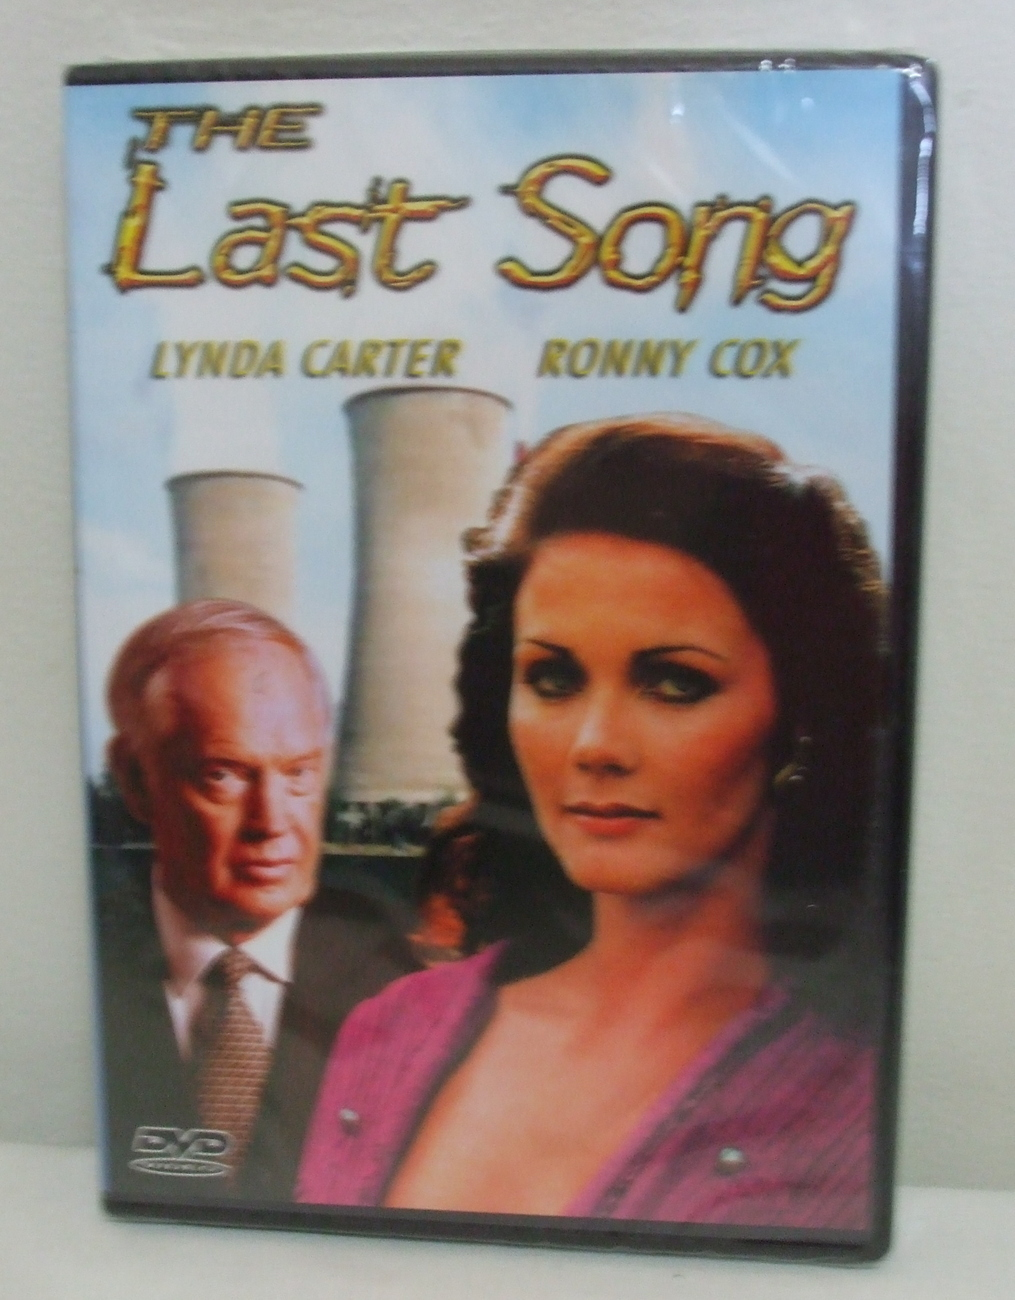 DVD New The Last Song Lynda Carter and Ronny Cox